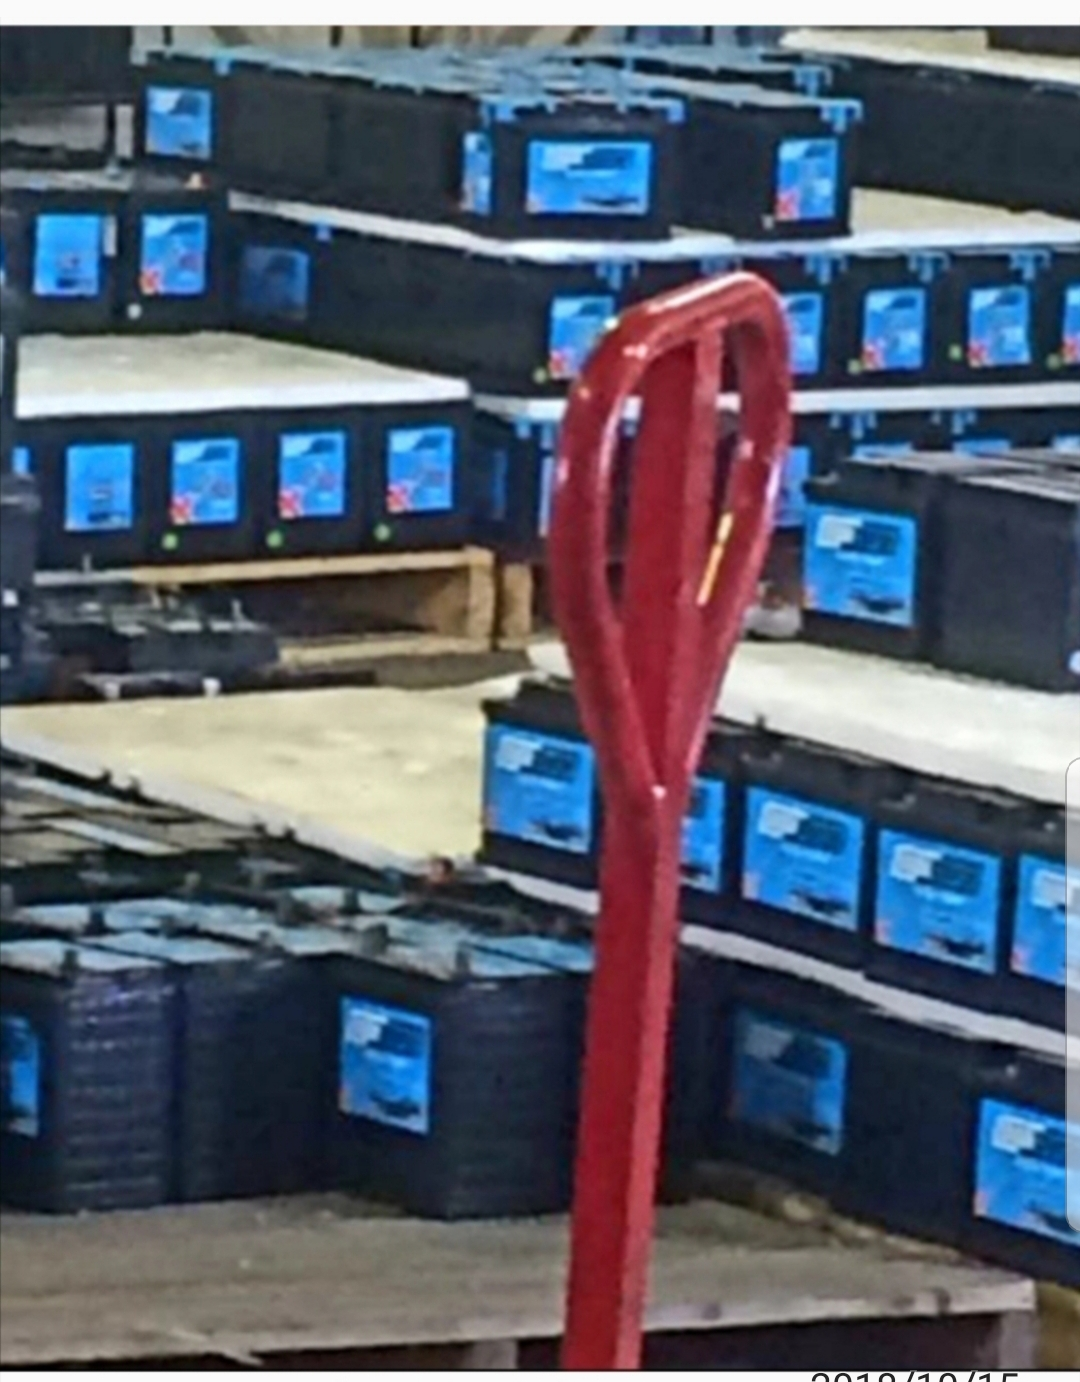 BRAND NEW DIXON CAR BATTERIES 18MONTHS NATIONWIDE GUARANTEE SABS AND ISO9001 APPROVED CHEAPEST RSA